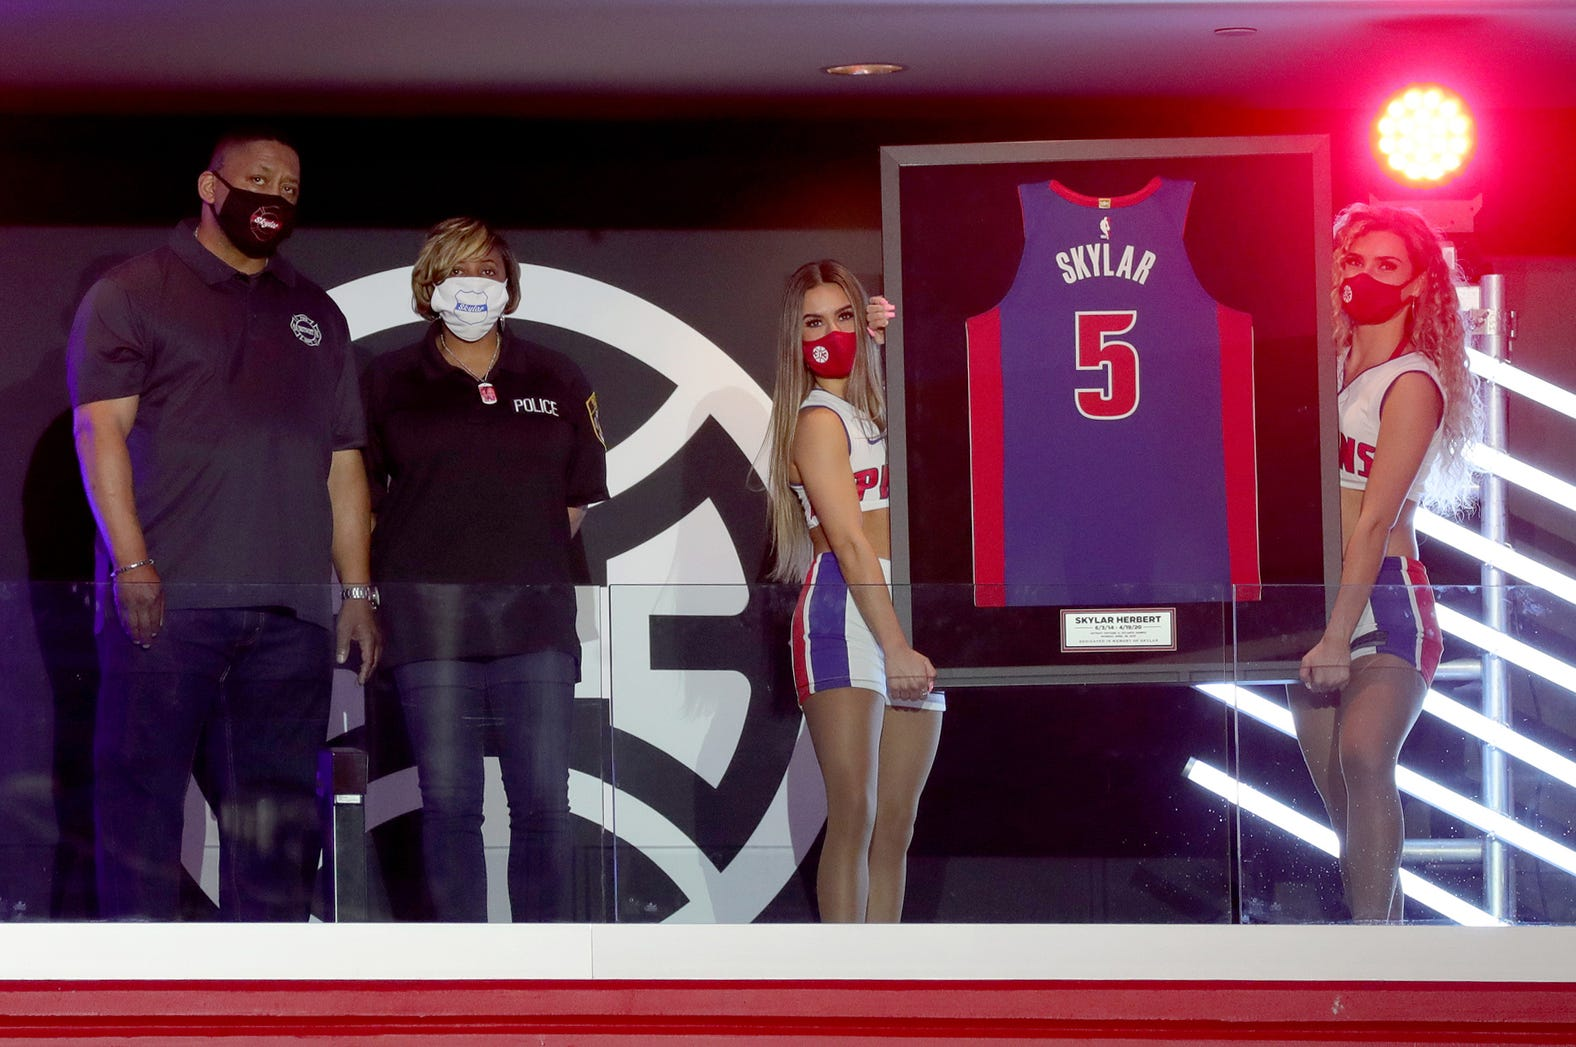 Detroit Pistons honored Skylar Herbert who at one point was Michigan's youngest victim of COVID-19 her parents Ebbie and LaVondria Herbert both were on hand for the game against the  Atlanta Hawks Monday, April 26, 2021 at Little Caesars Arena in Detroit, MI.